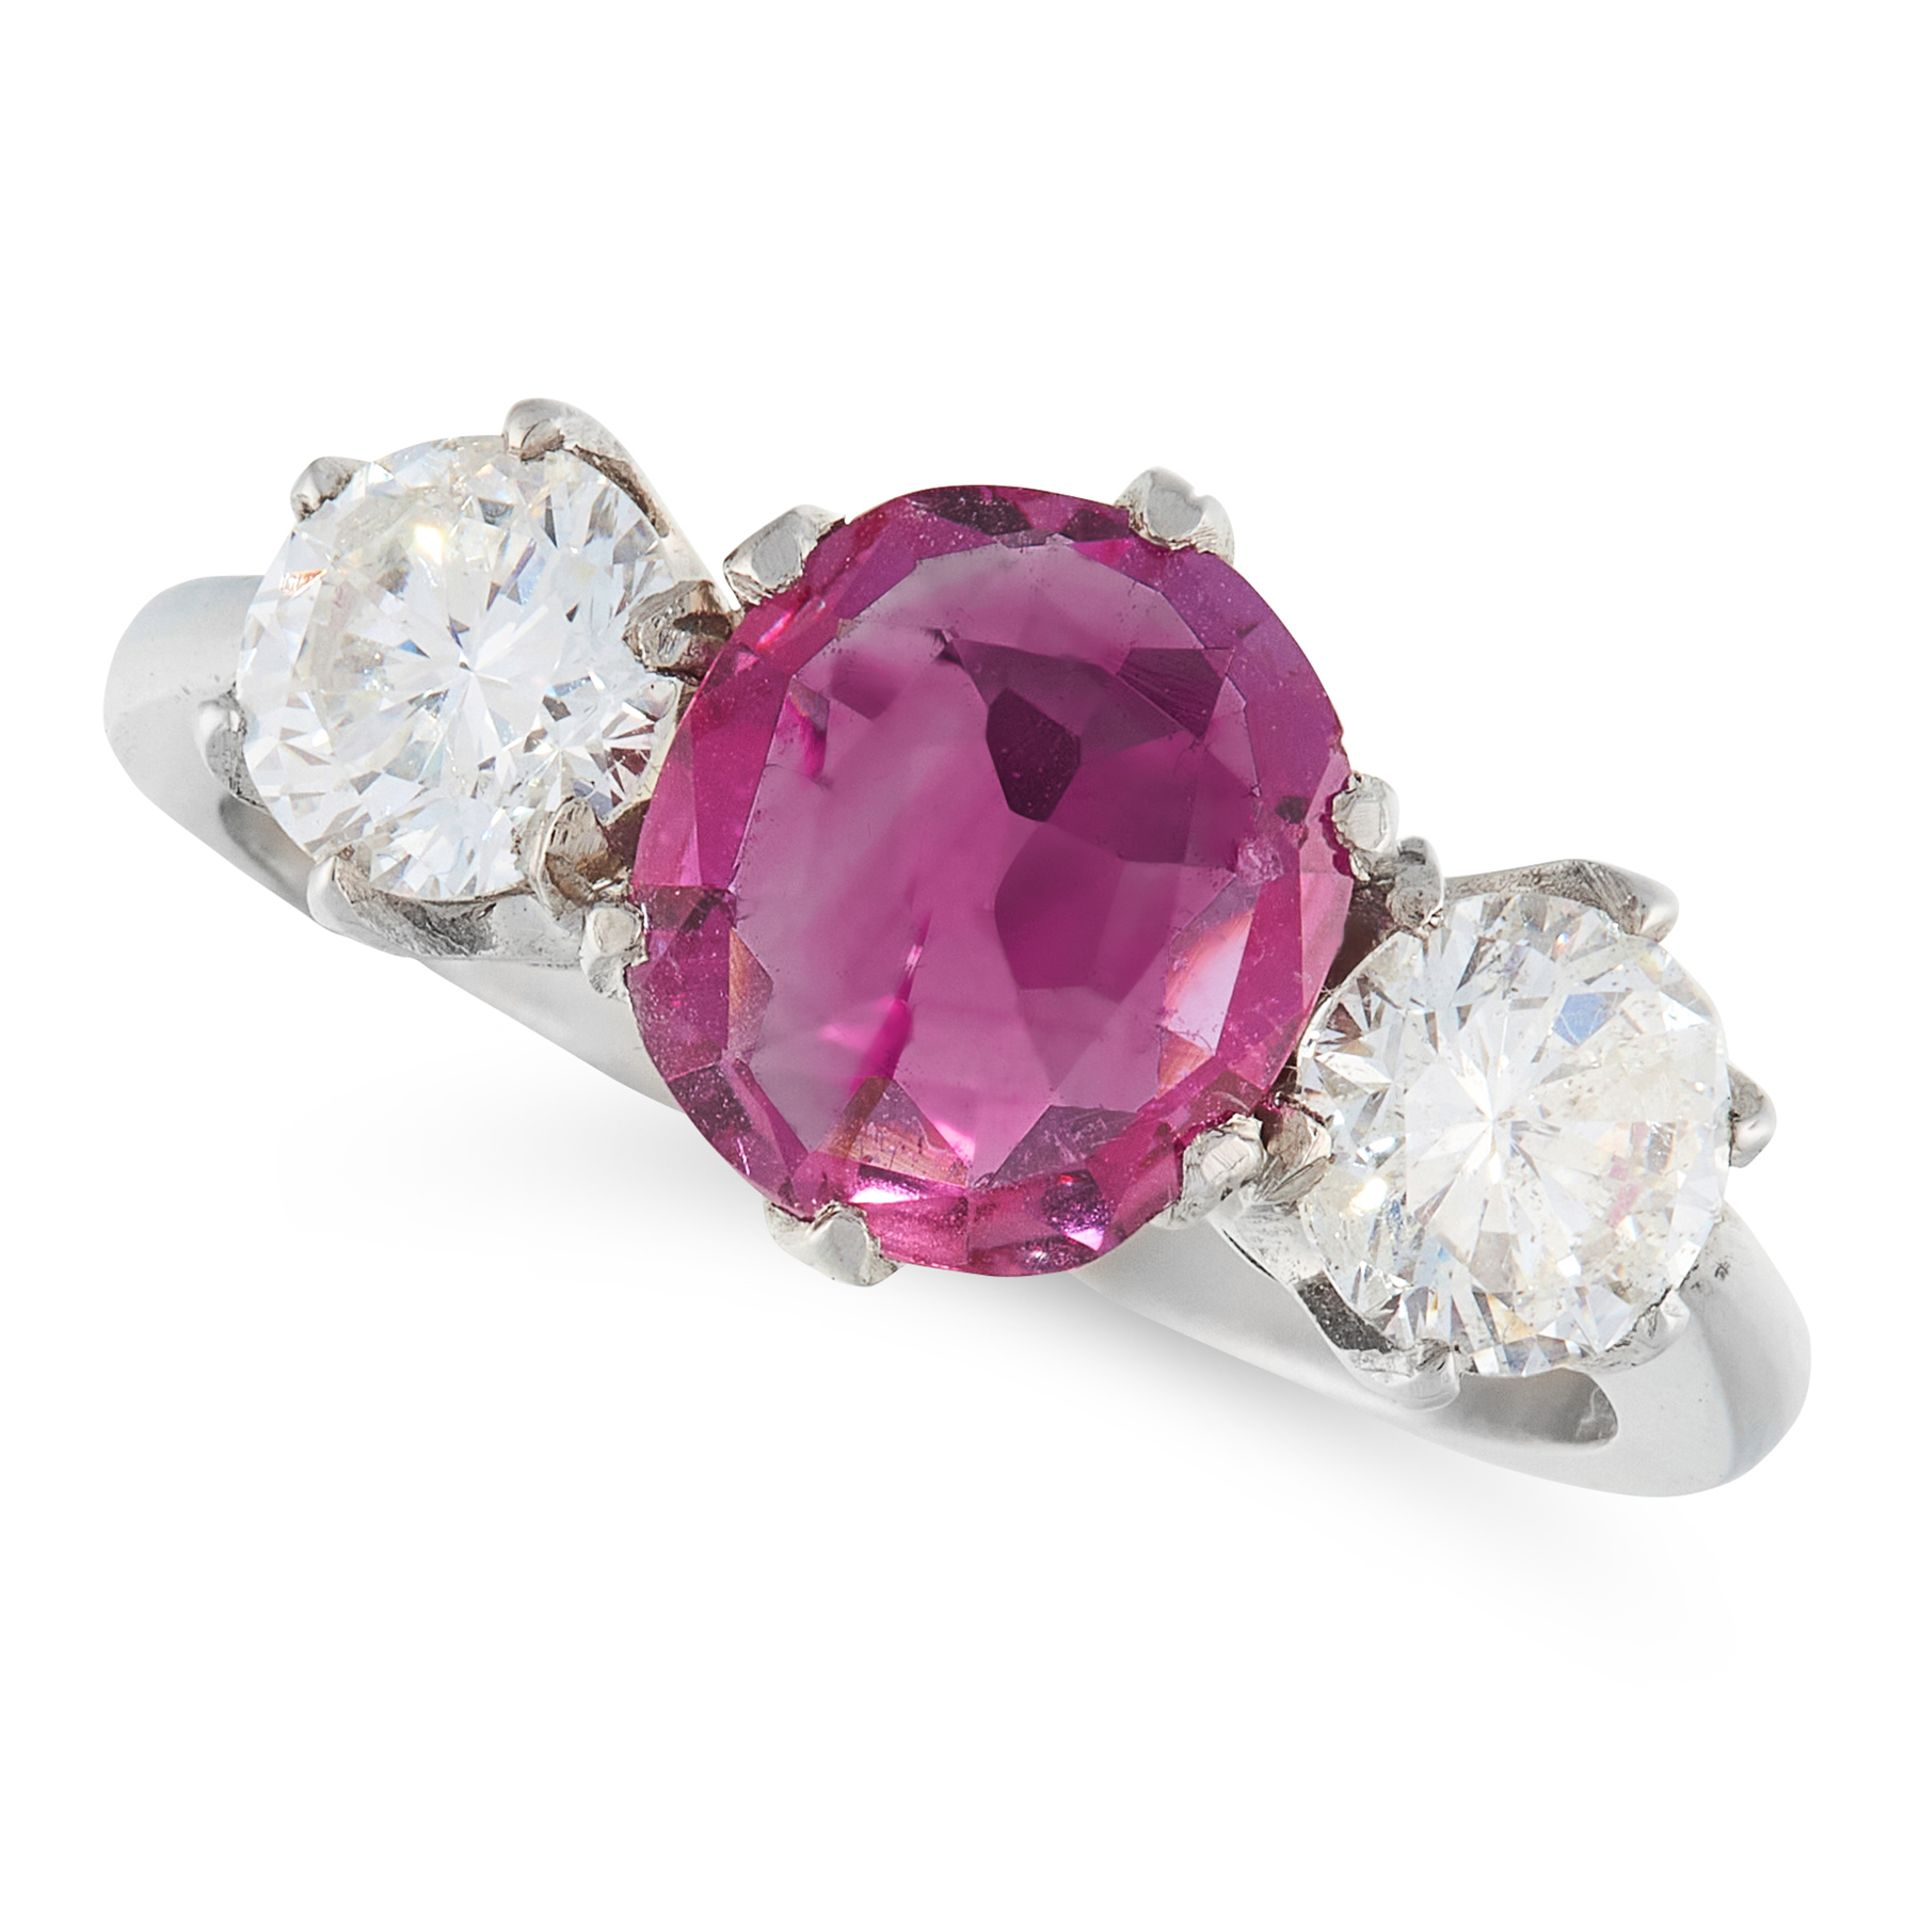 AN UNHEATED RUBY AND DIAMOND RING in platinum, set with a central cushion cut ruby of 1.37 carats